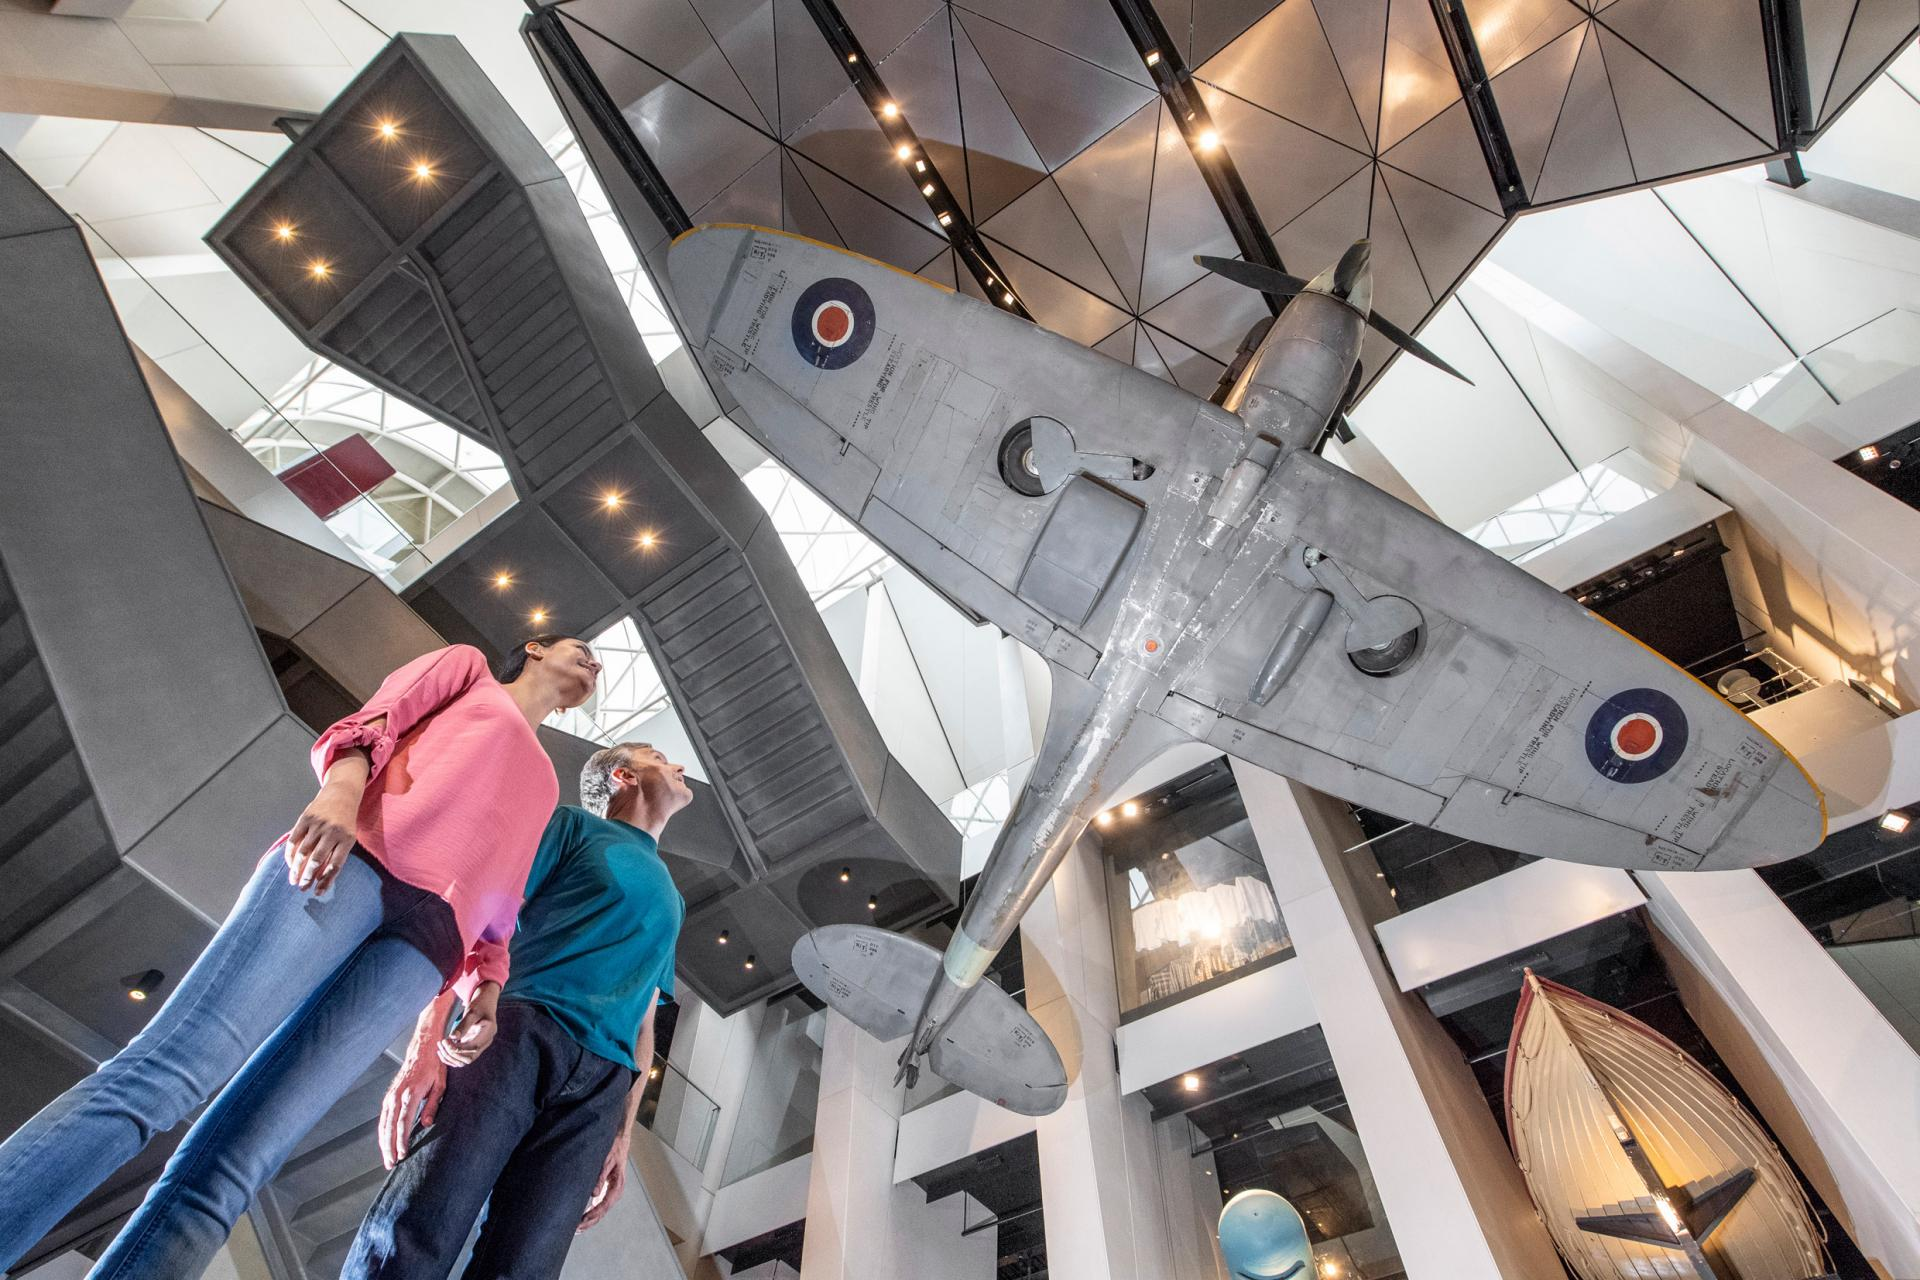 Visitors explore the Atrium at IWM London